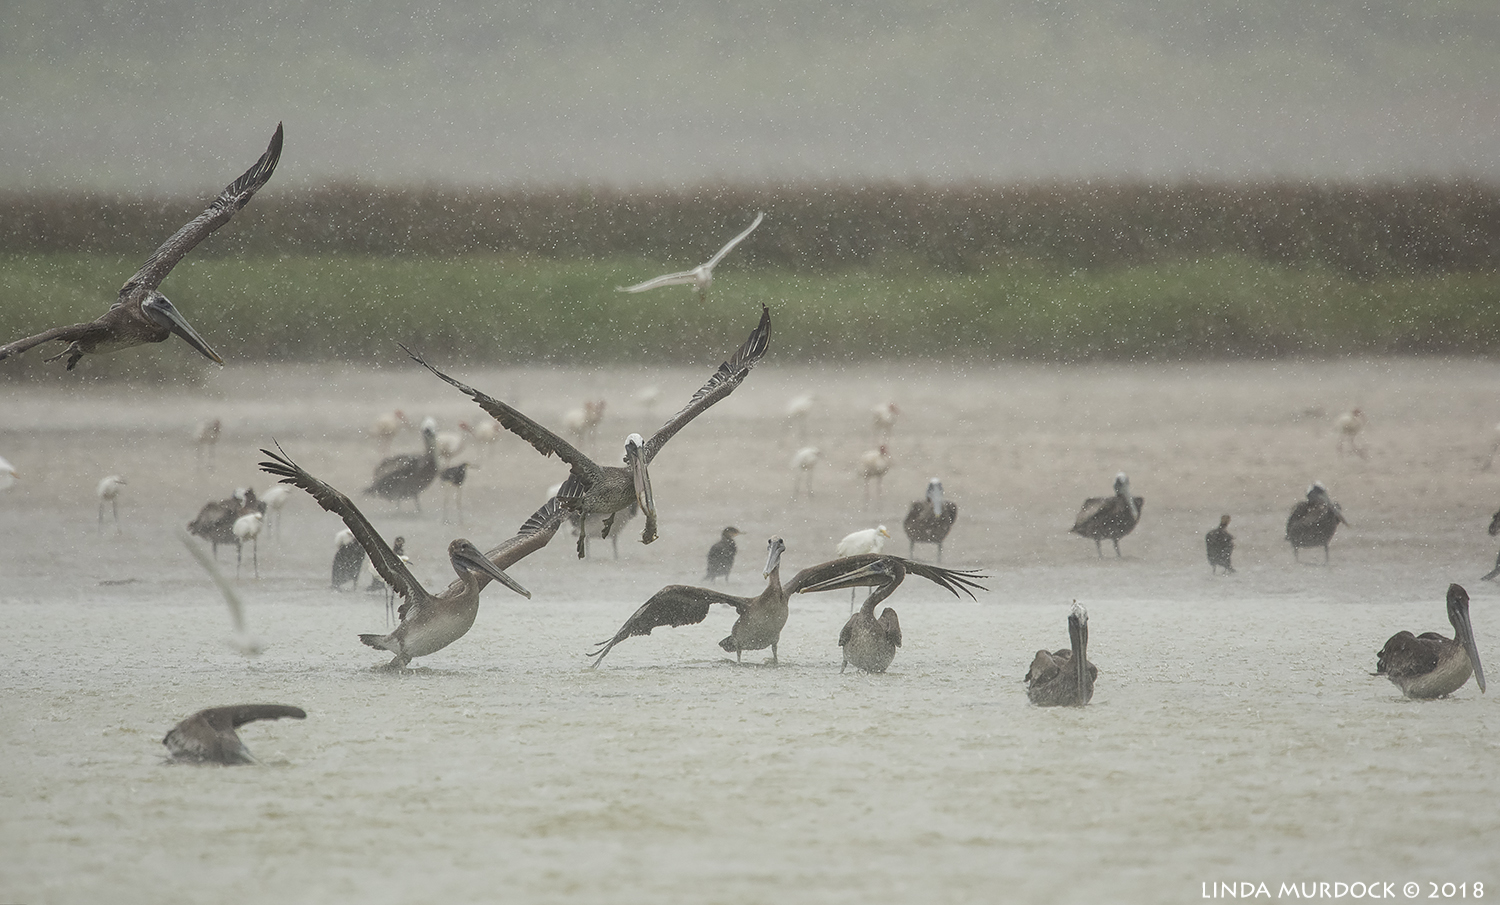 Brown Pelicans having a party Nikon D810 with NIKKOR 500mm f/4E VR + Nikon 1.7x TC ~ 1/2000 sec f/6.7 ISO 1600; braced in passenger window